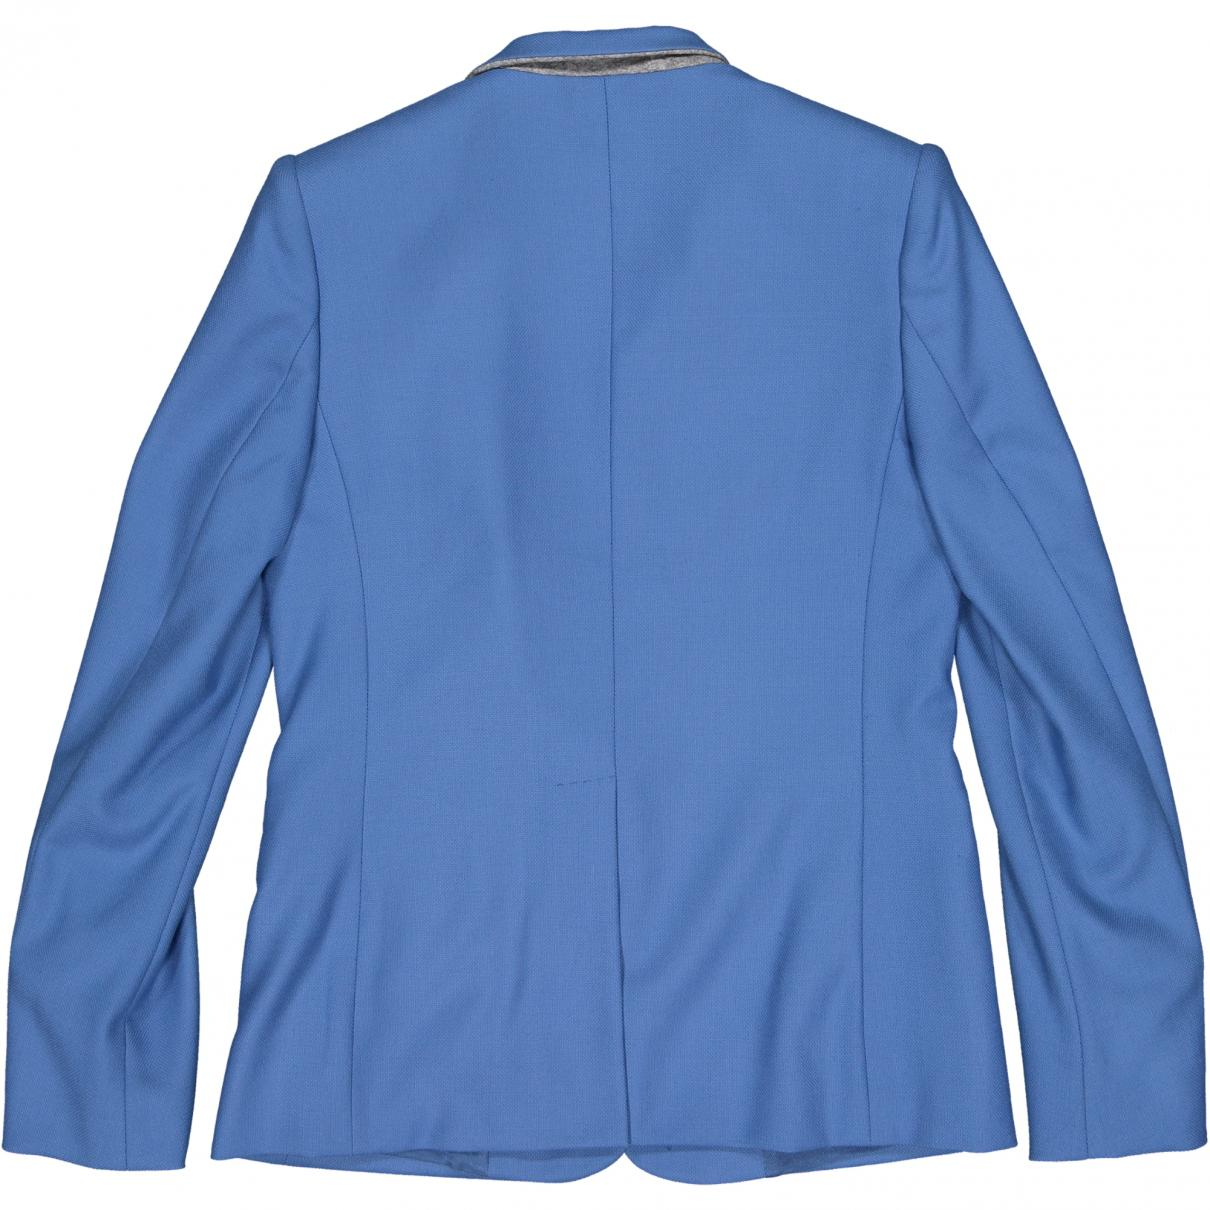 bf513225bf4 Stella McCartney - Blue Wool Jacket - Lyst. View fullscreen